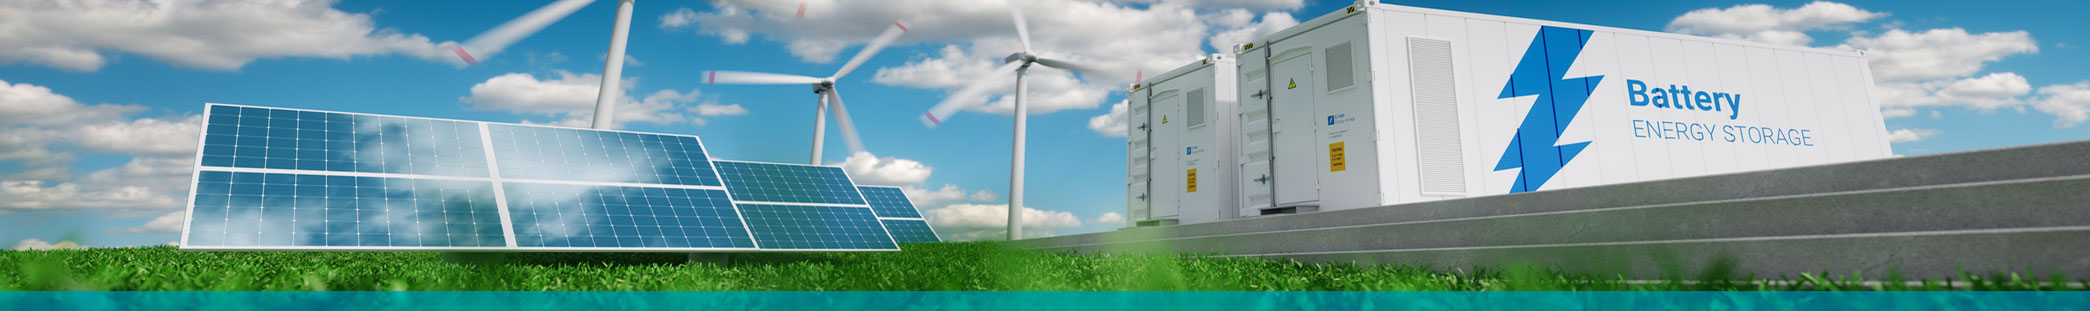 Green Energy Systems Graphic